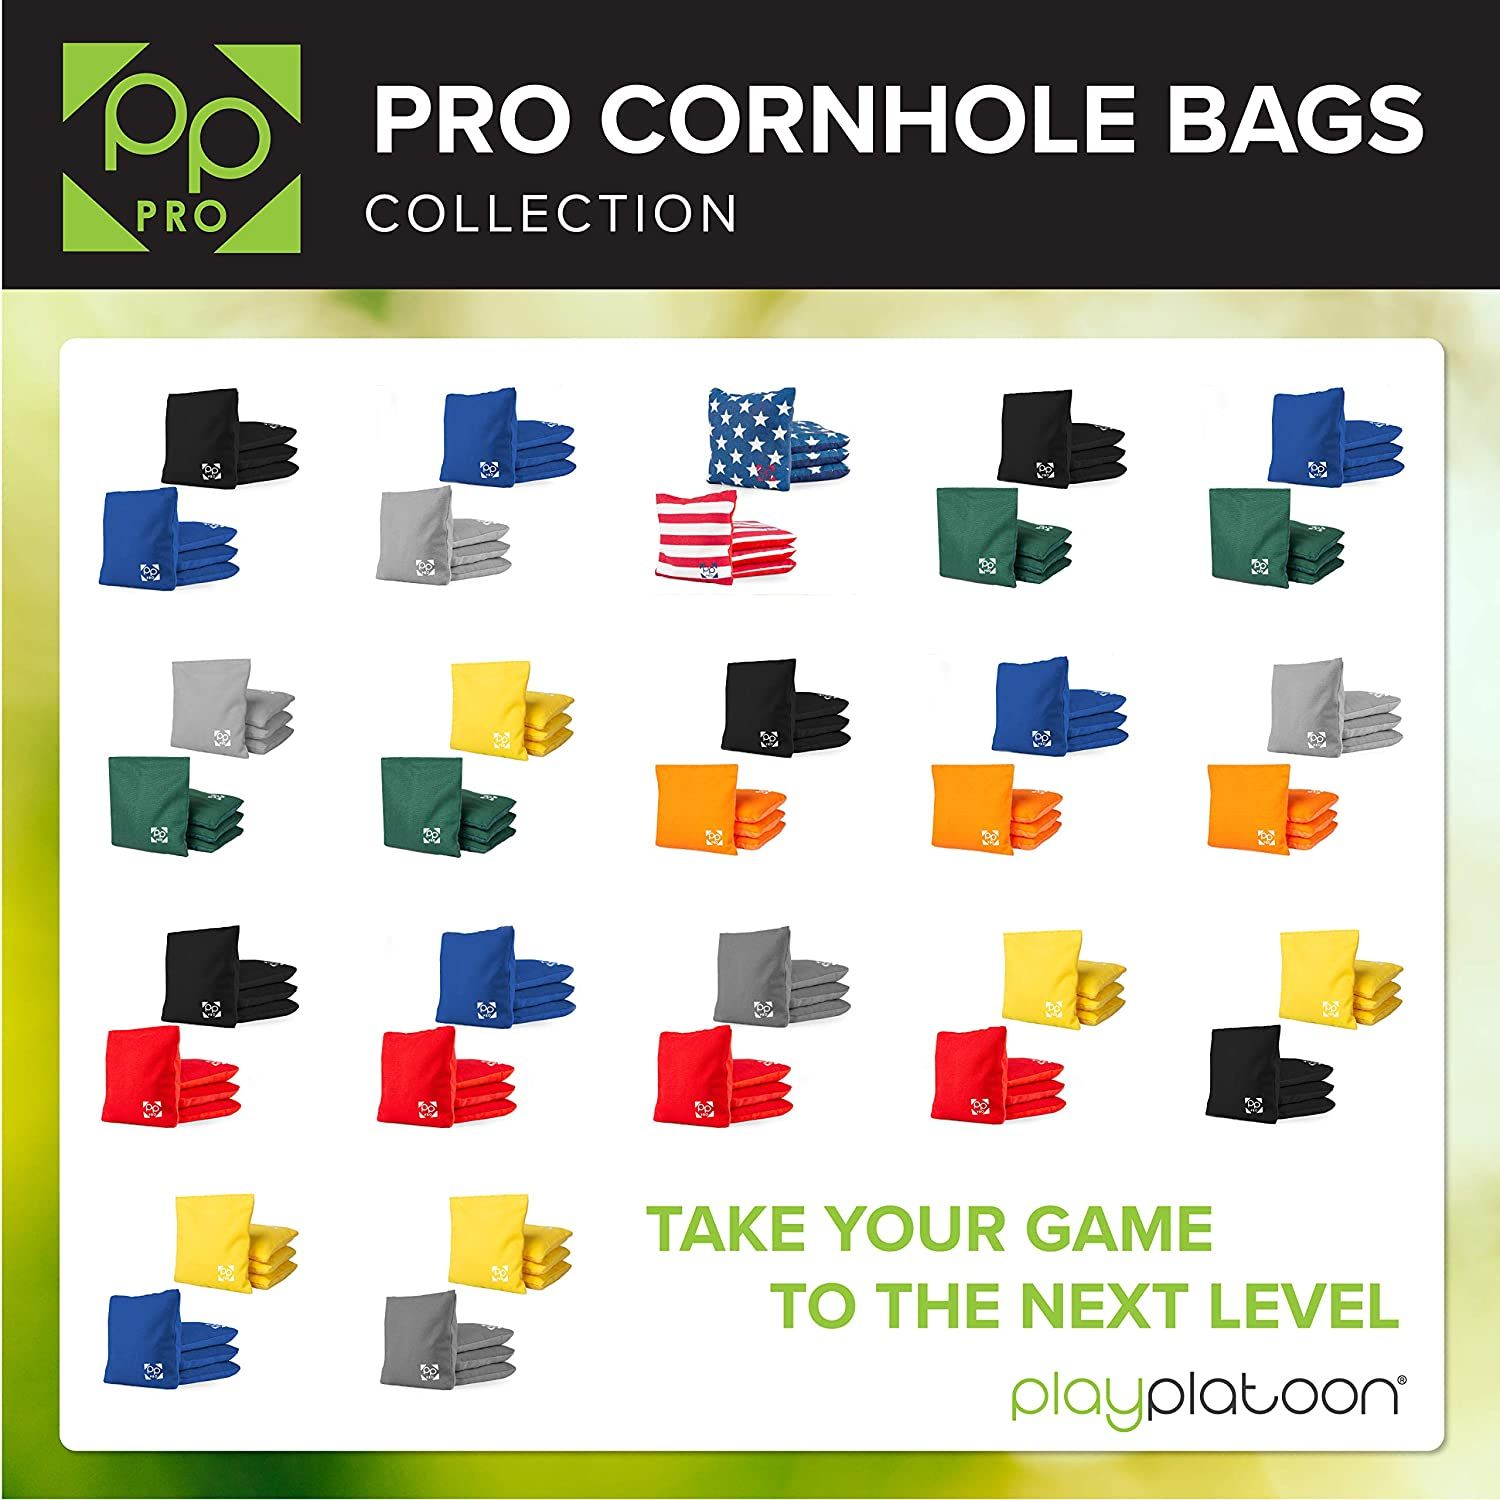 Professional Cornhole Bags Set of 8 Regulation All Weather Two Sided Bean Bags for Pro Corn Hole Game